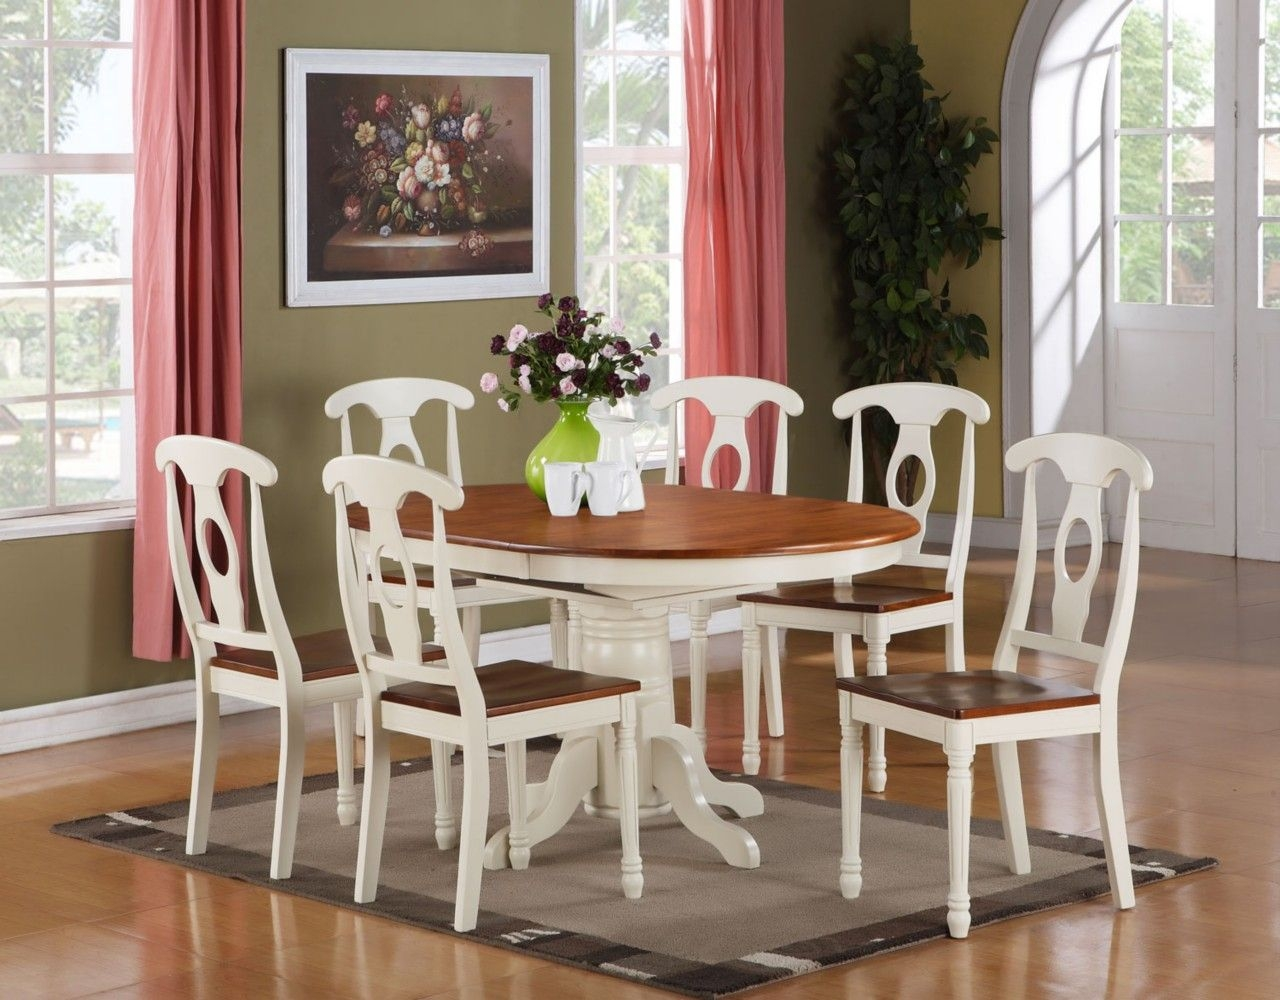 7 Pc Kenley Oval Dinette Dining Room Set Table With 6 Chairs In Buttermilk Brown  Ebay